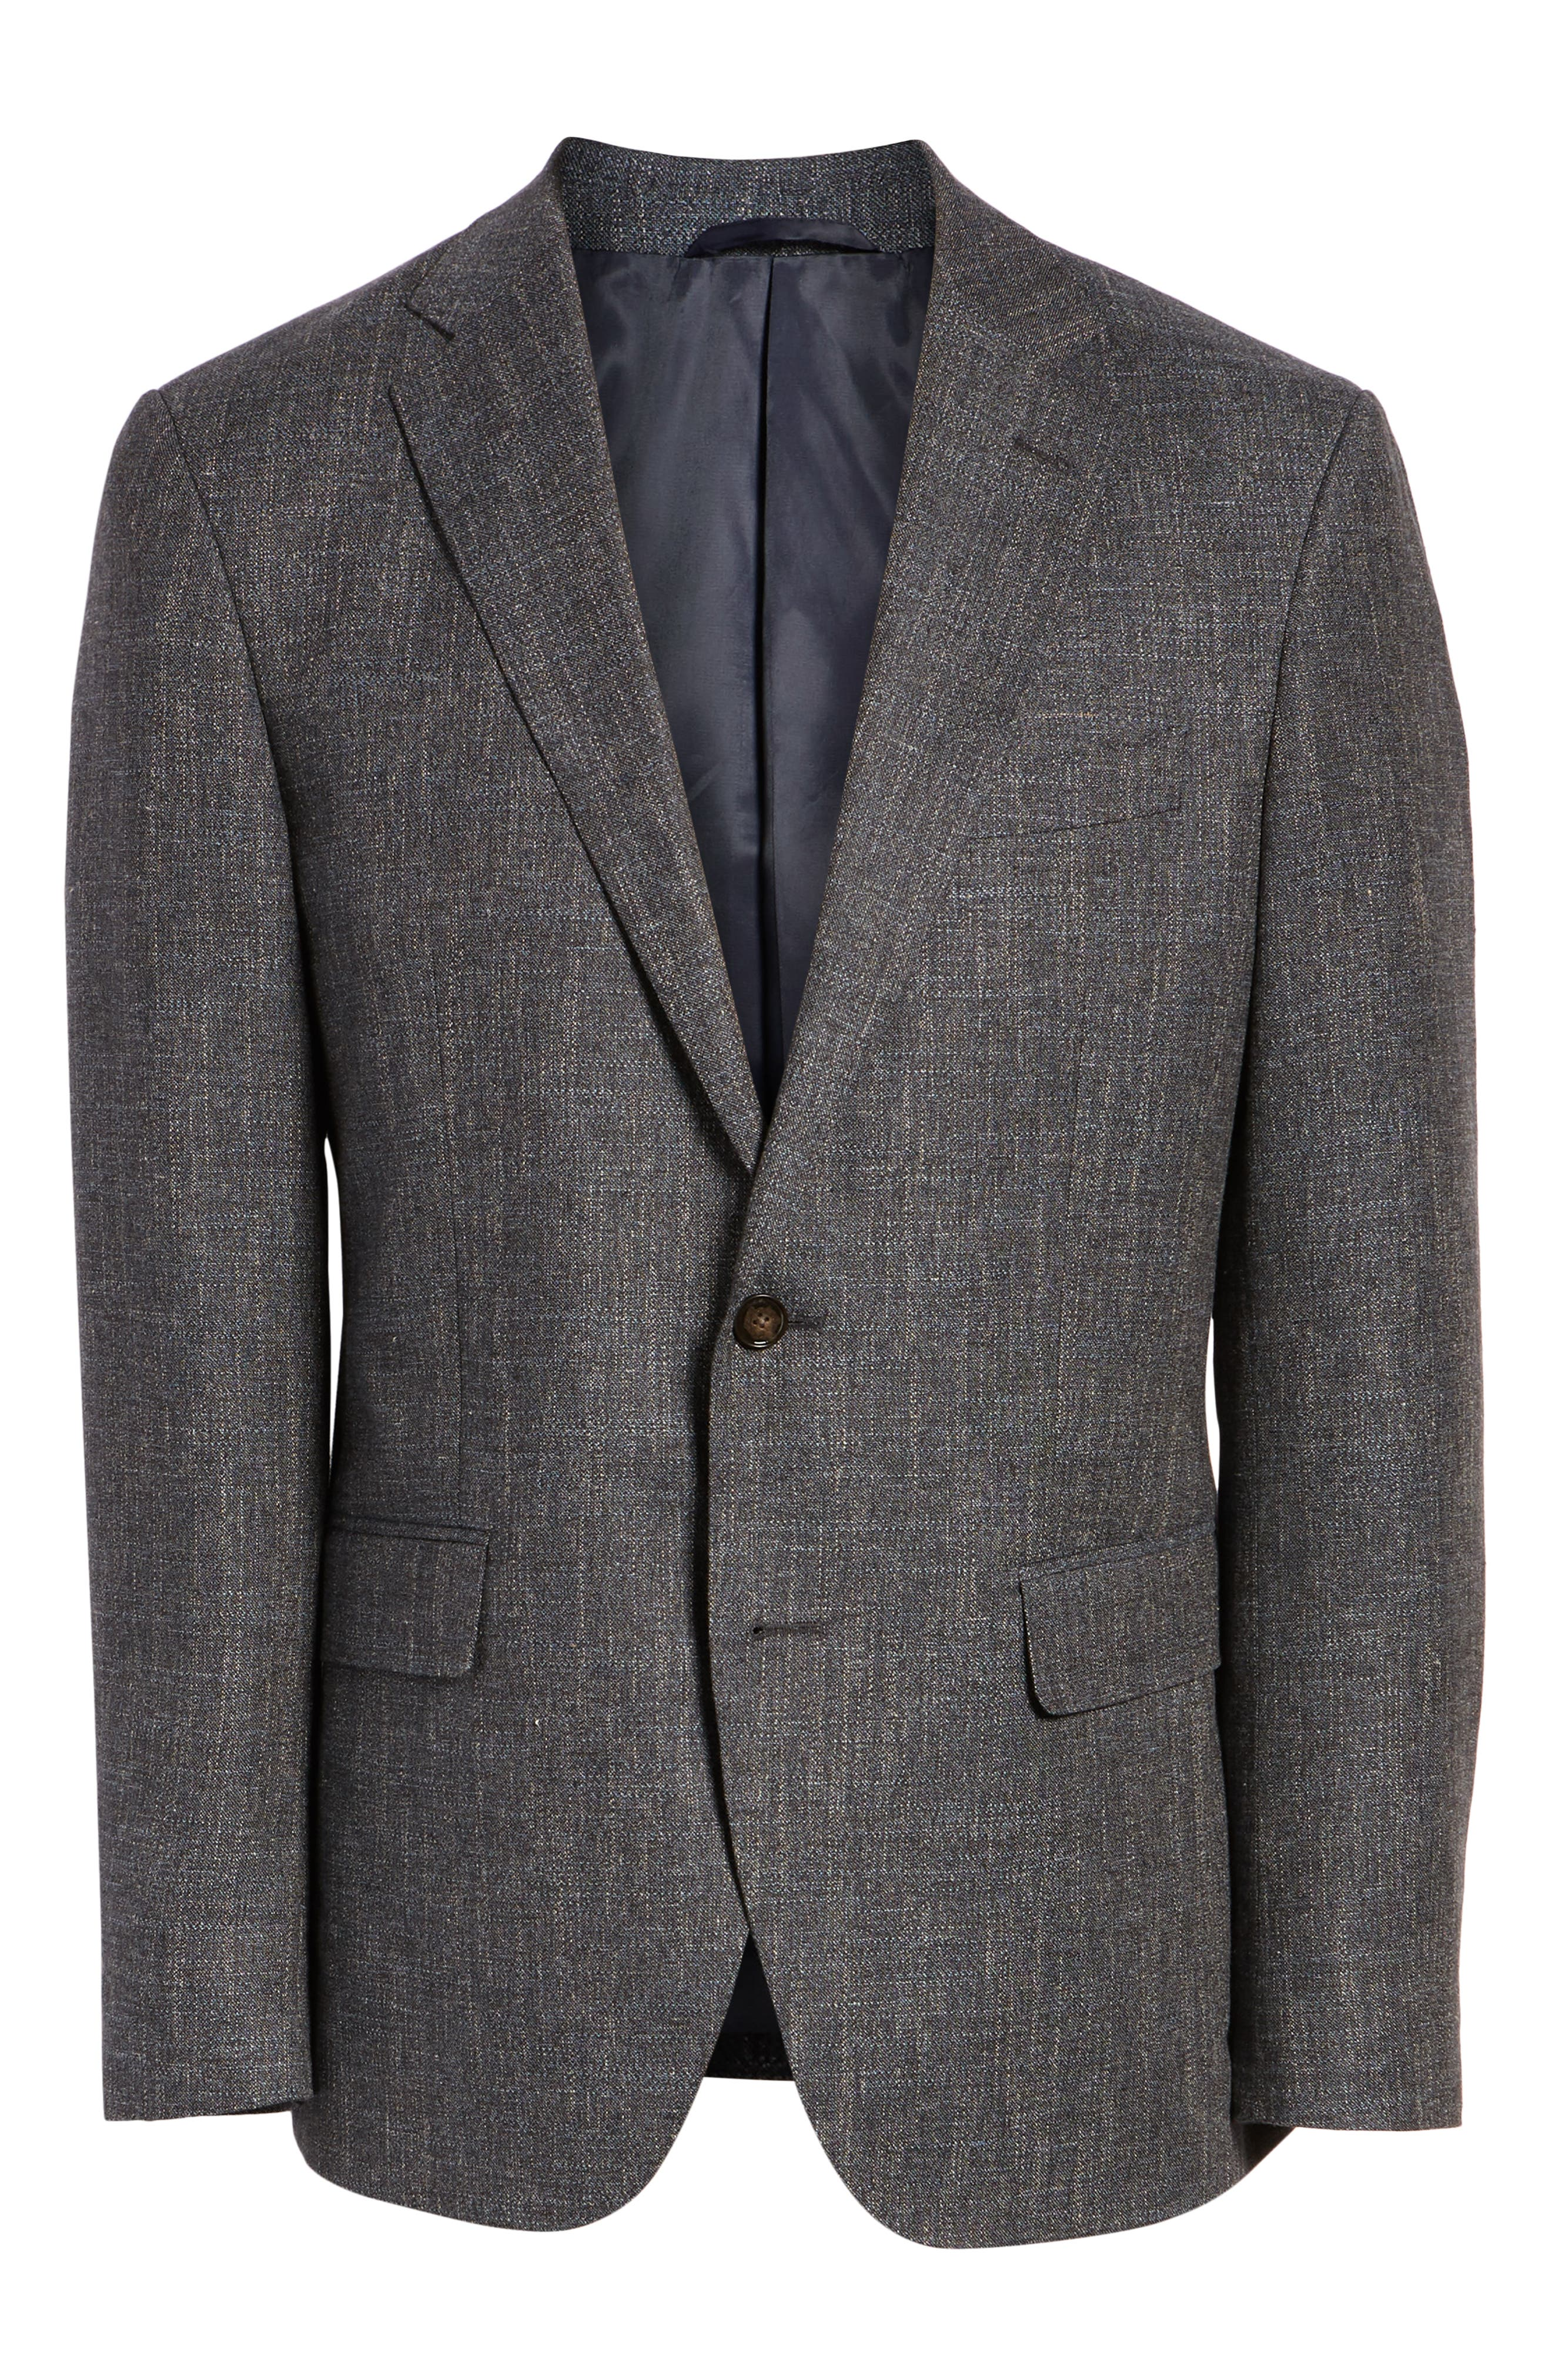 Renton Road Wool & Linen Sport Coat,                             Alternate thumbnail 5, color,                             GRAPHITE